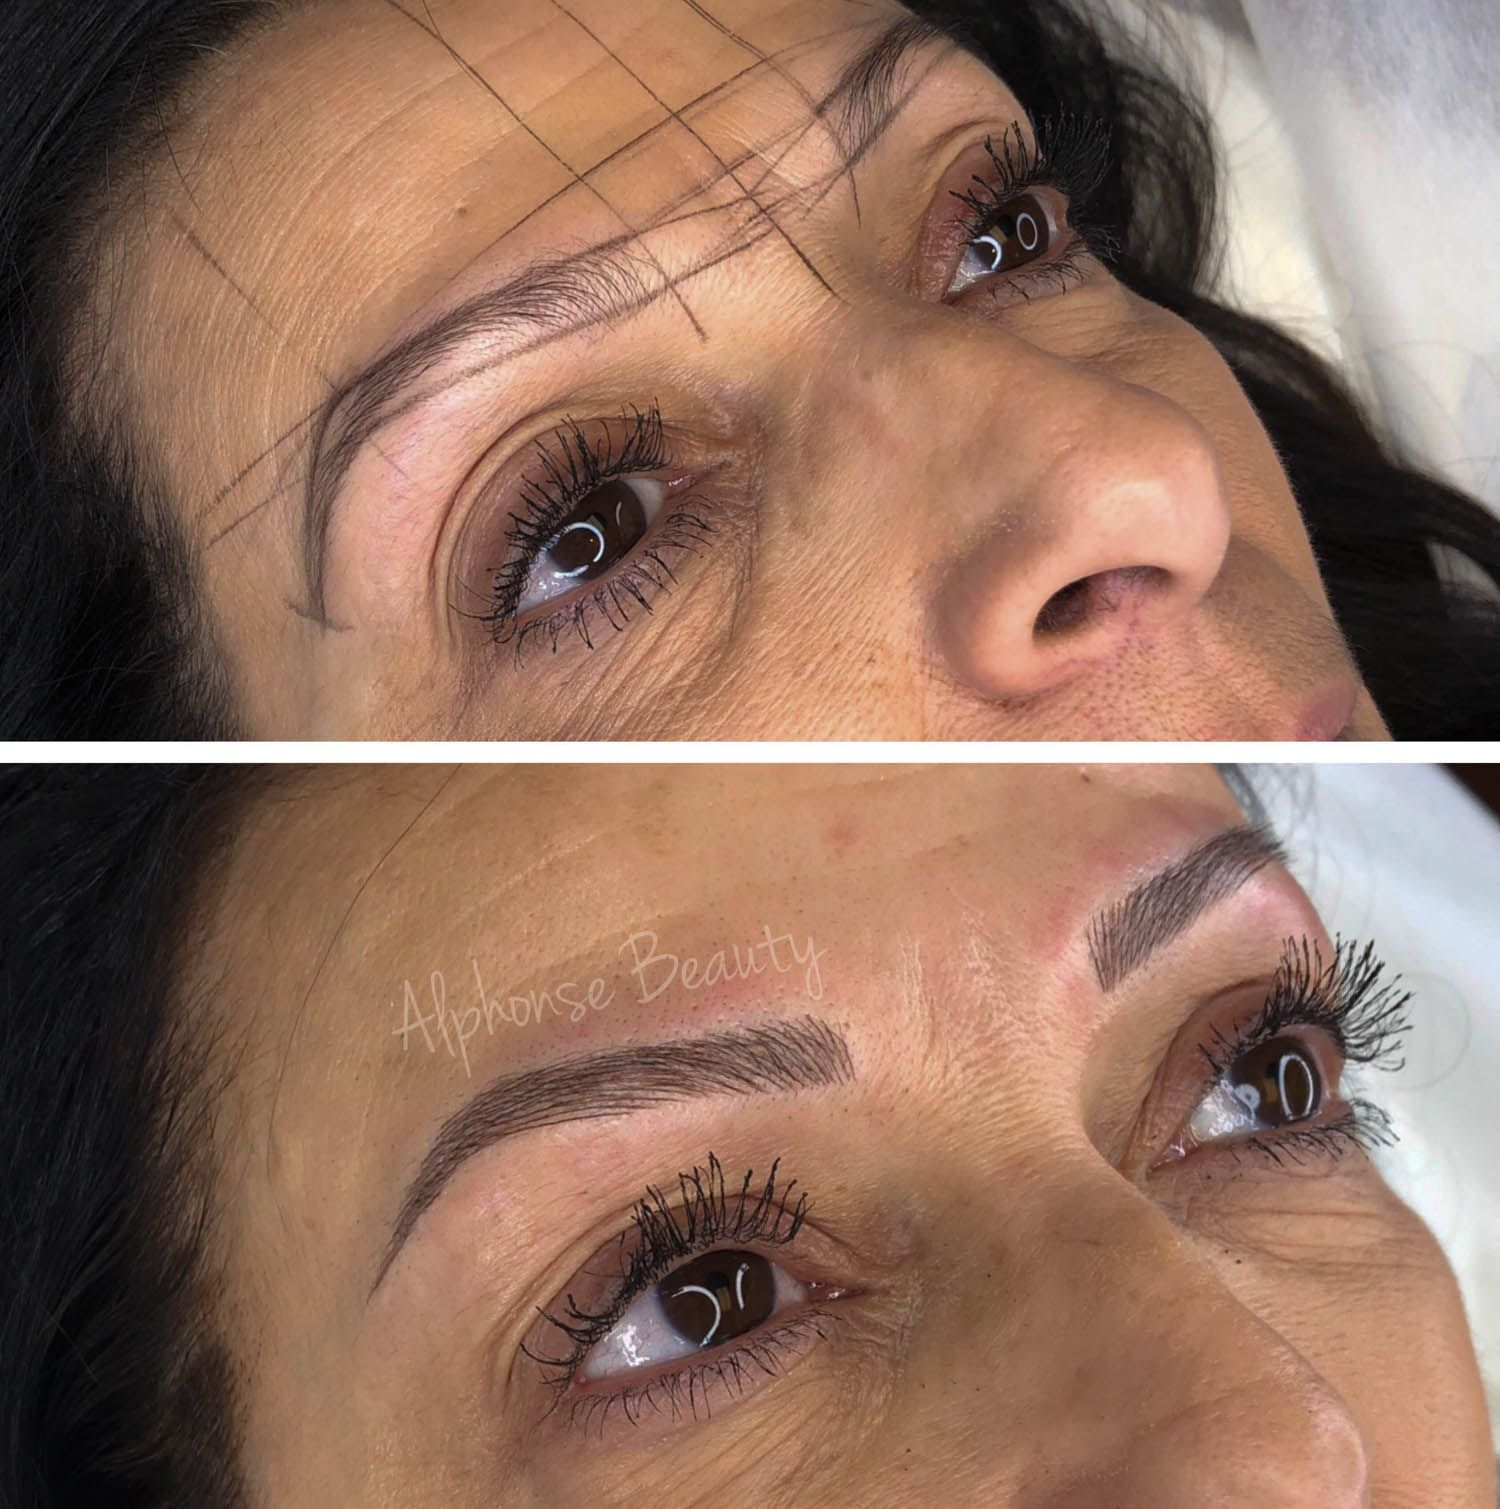 Eyebrow mapping resulting in perfect eyebrows from Microblading